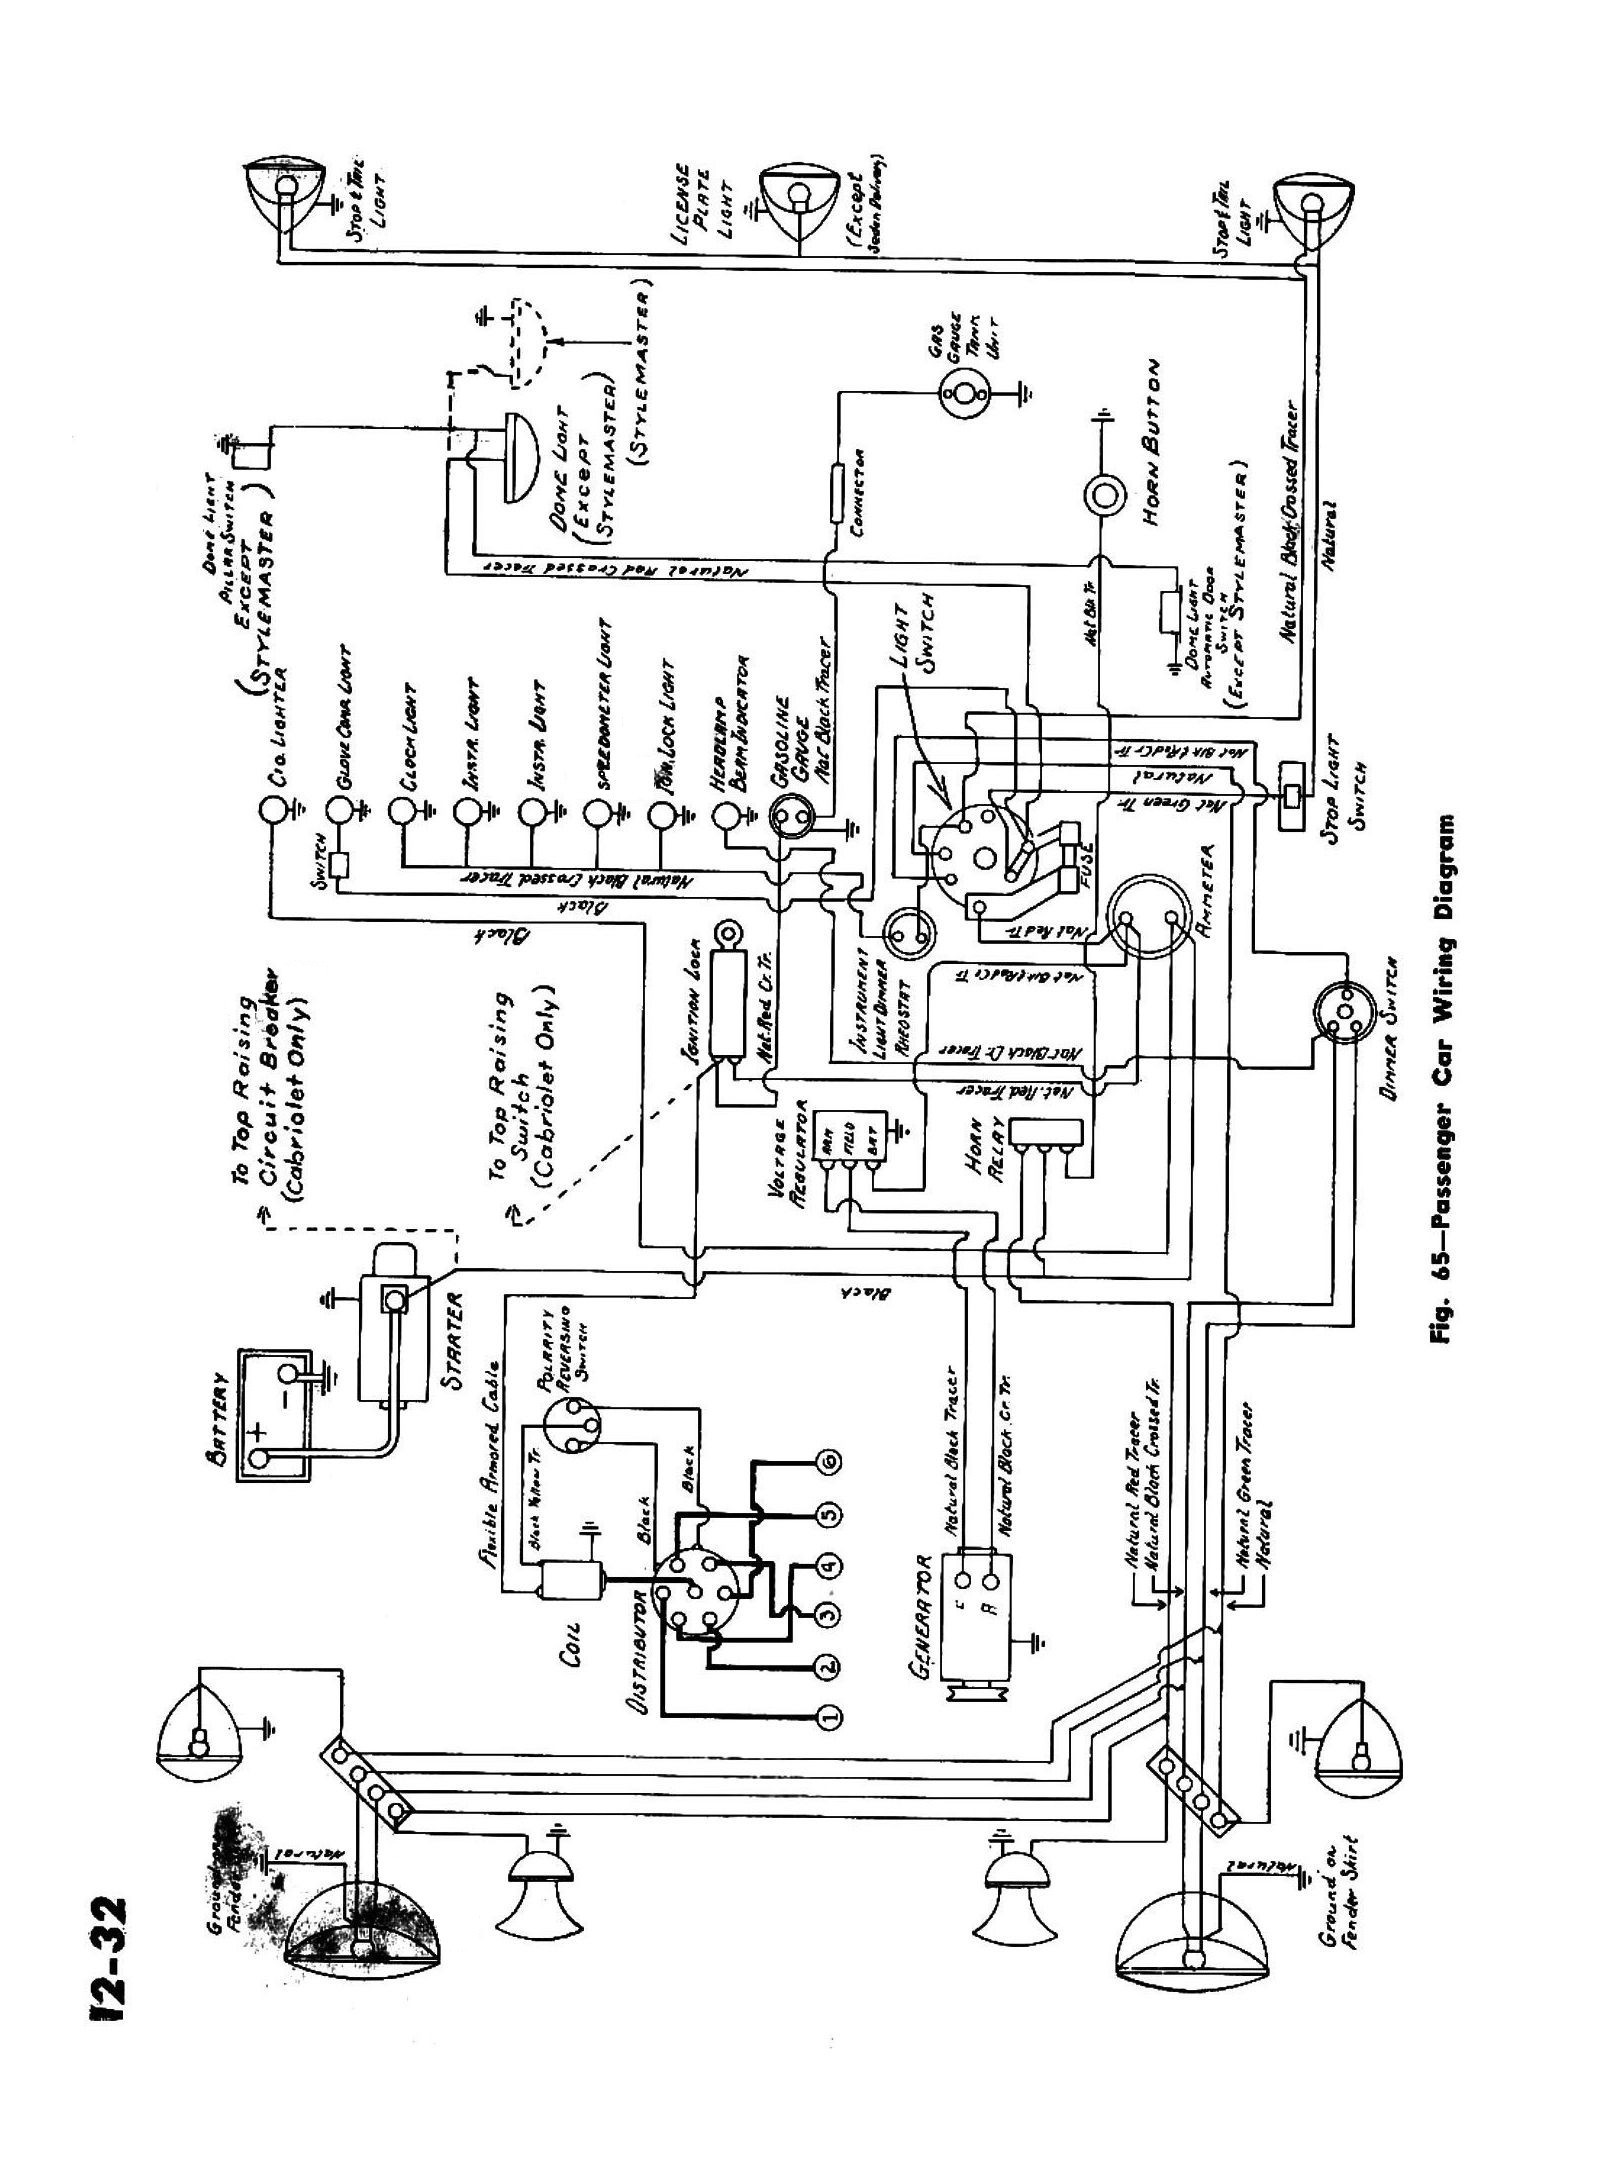 Classic Car Wiring Diagrams Chevy Wiring Diagrams Of Classic Car Wiring Diagrams